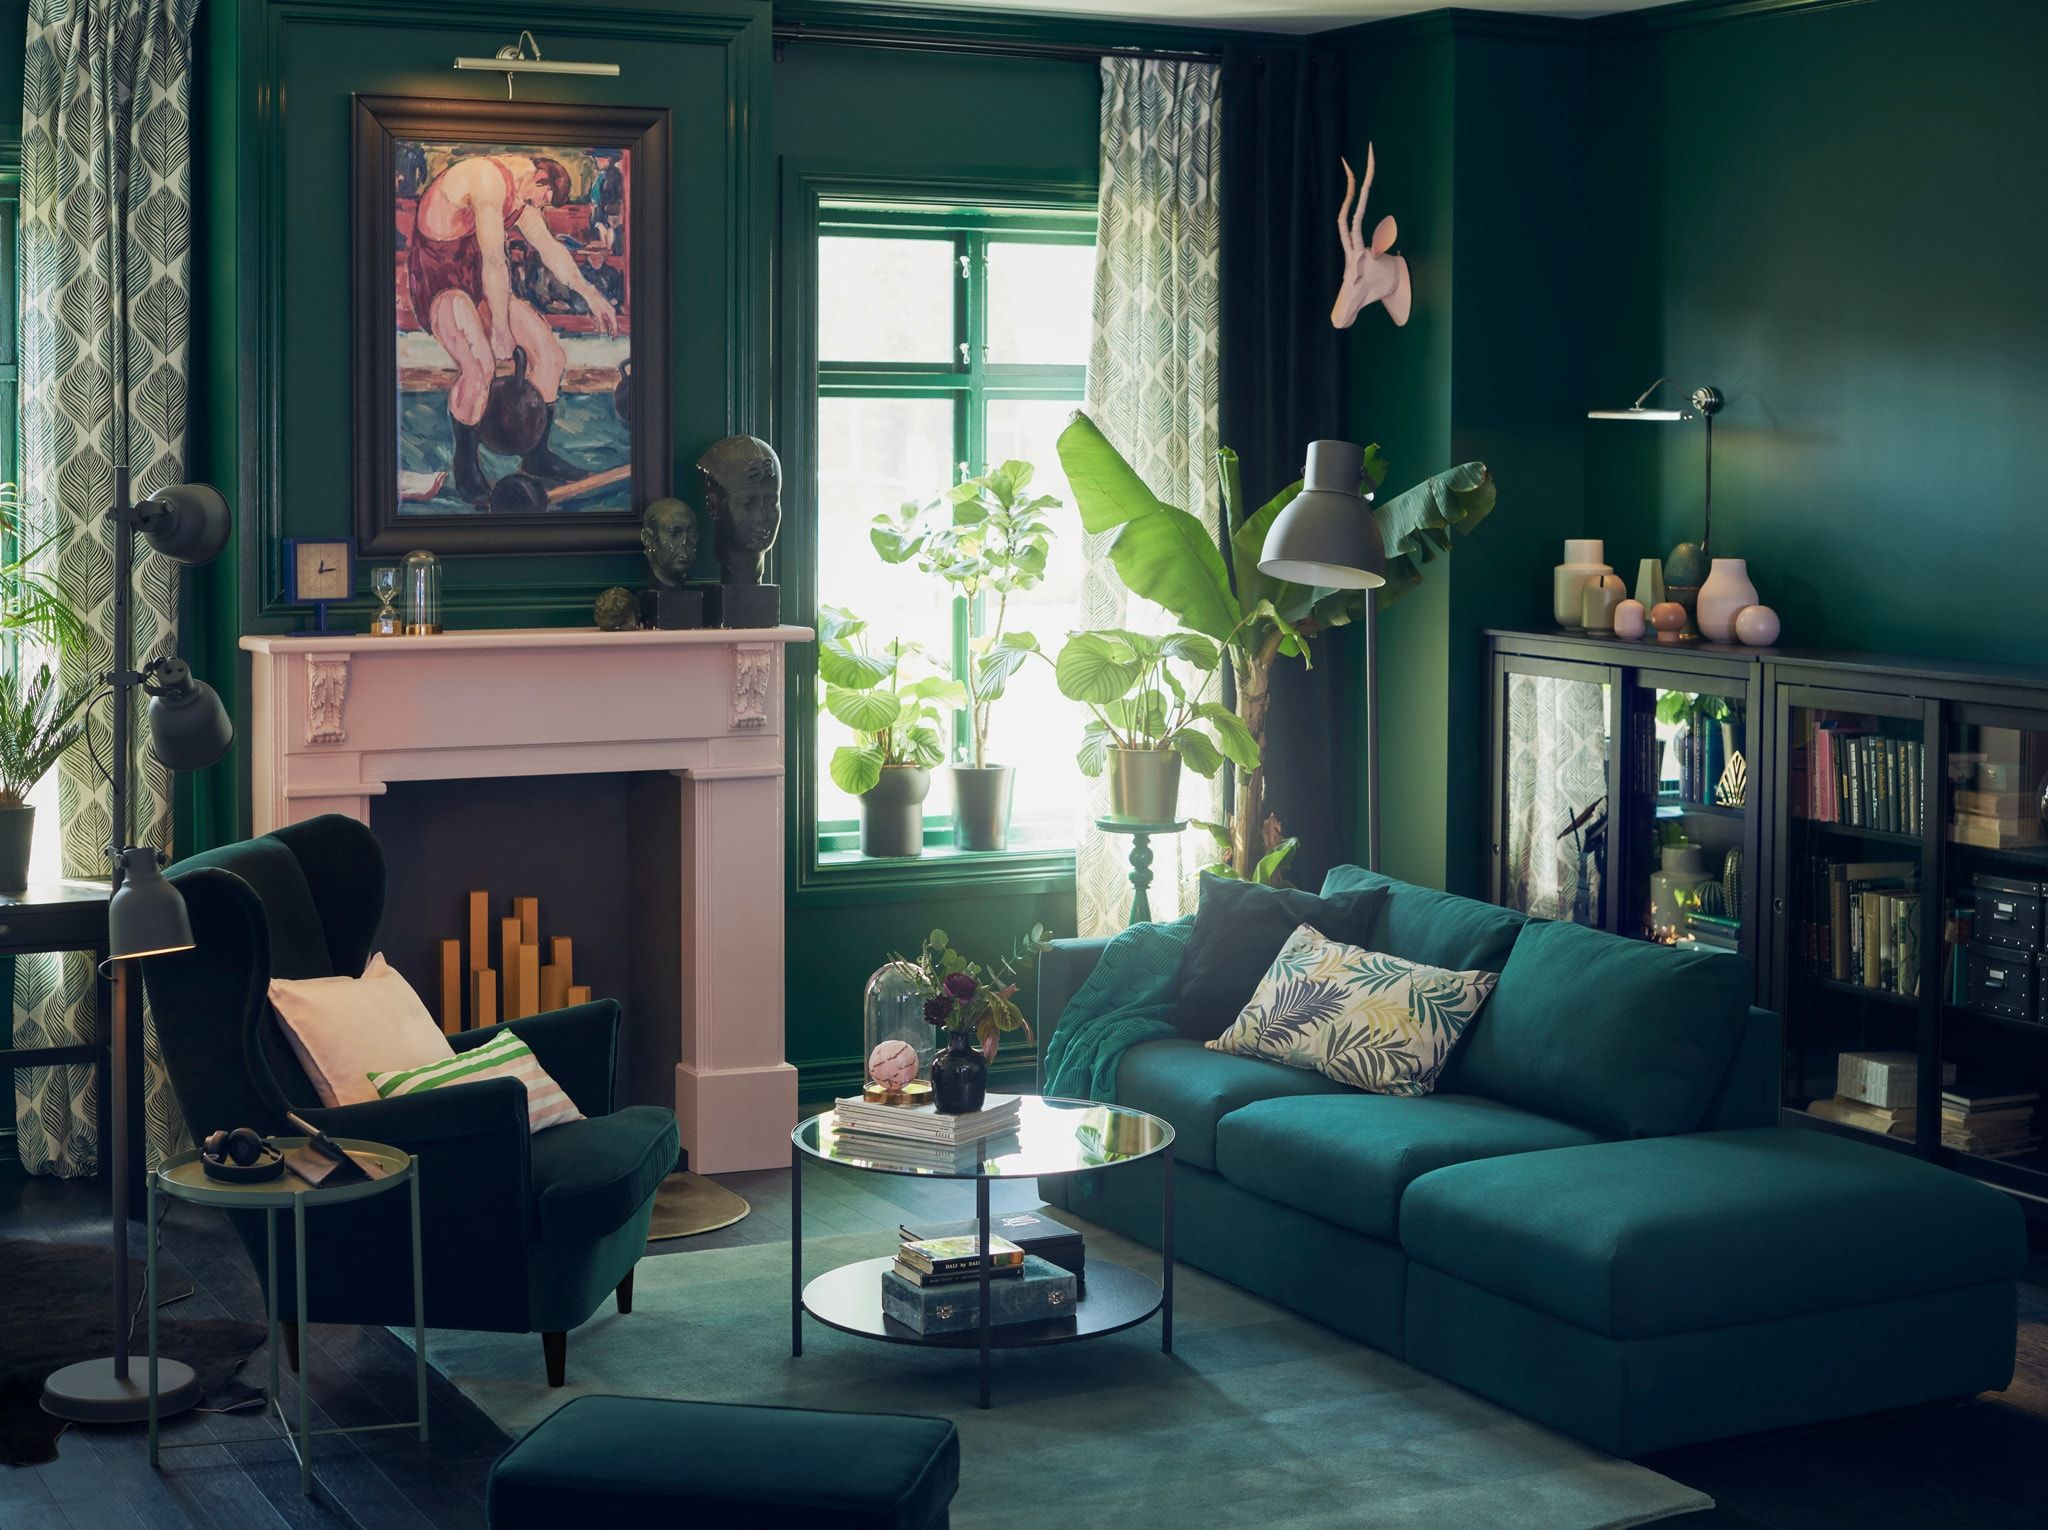 Image Result For Peacock Green Bedroom Comfortable Living Room Furniture Ikea Living Room Living Room Green #peacock #colors #living #room